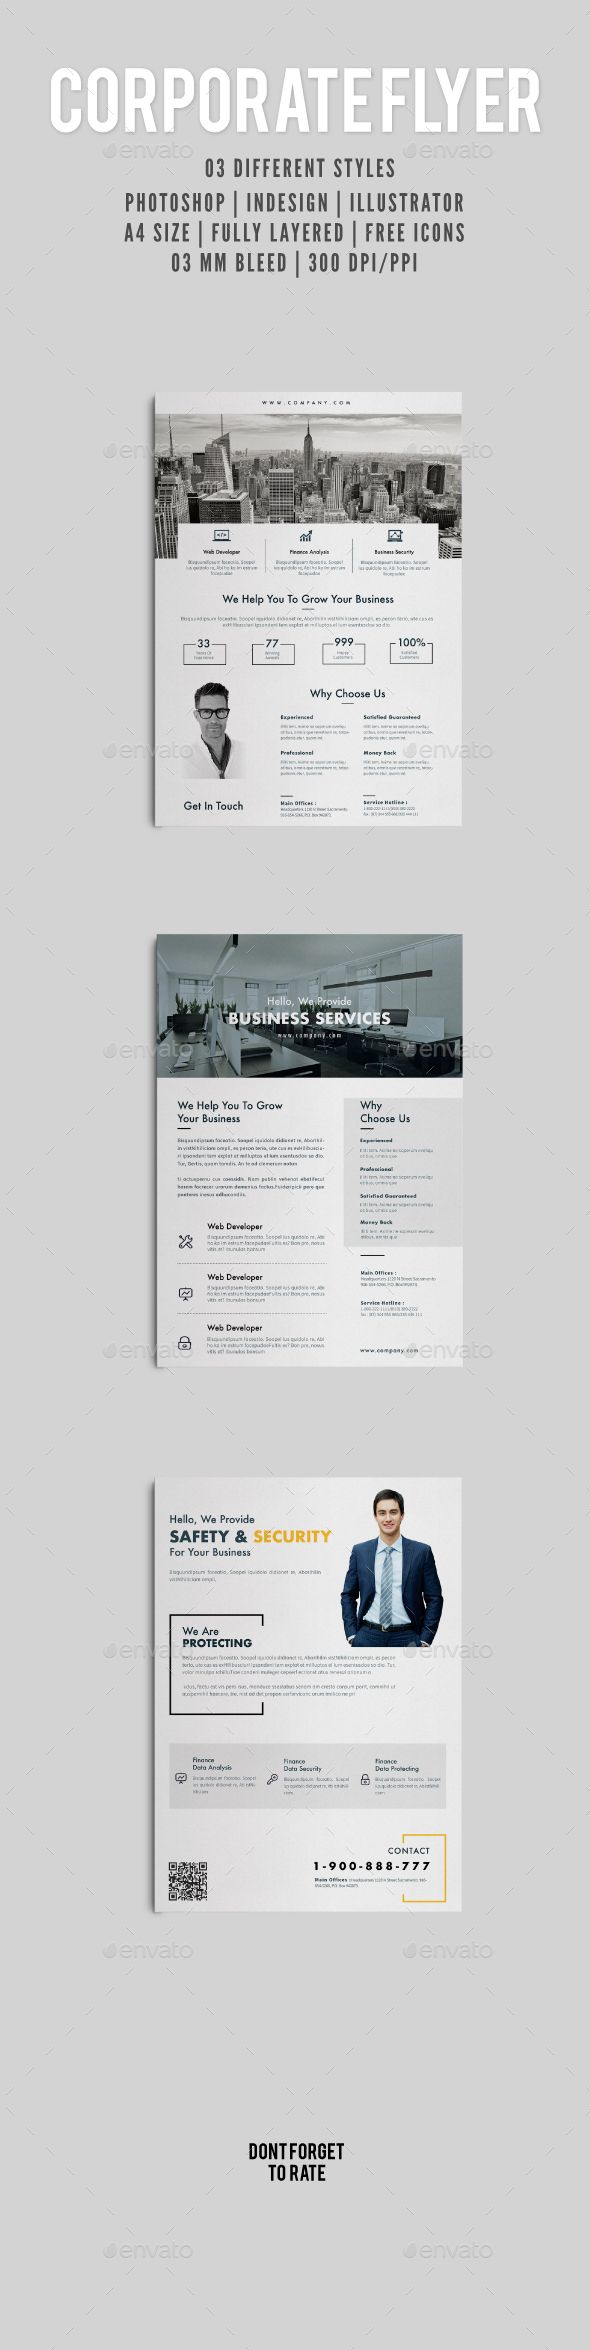 Corporate Flyer | Pinterest | Flyer printing, Print templates and ...